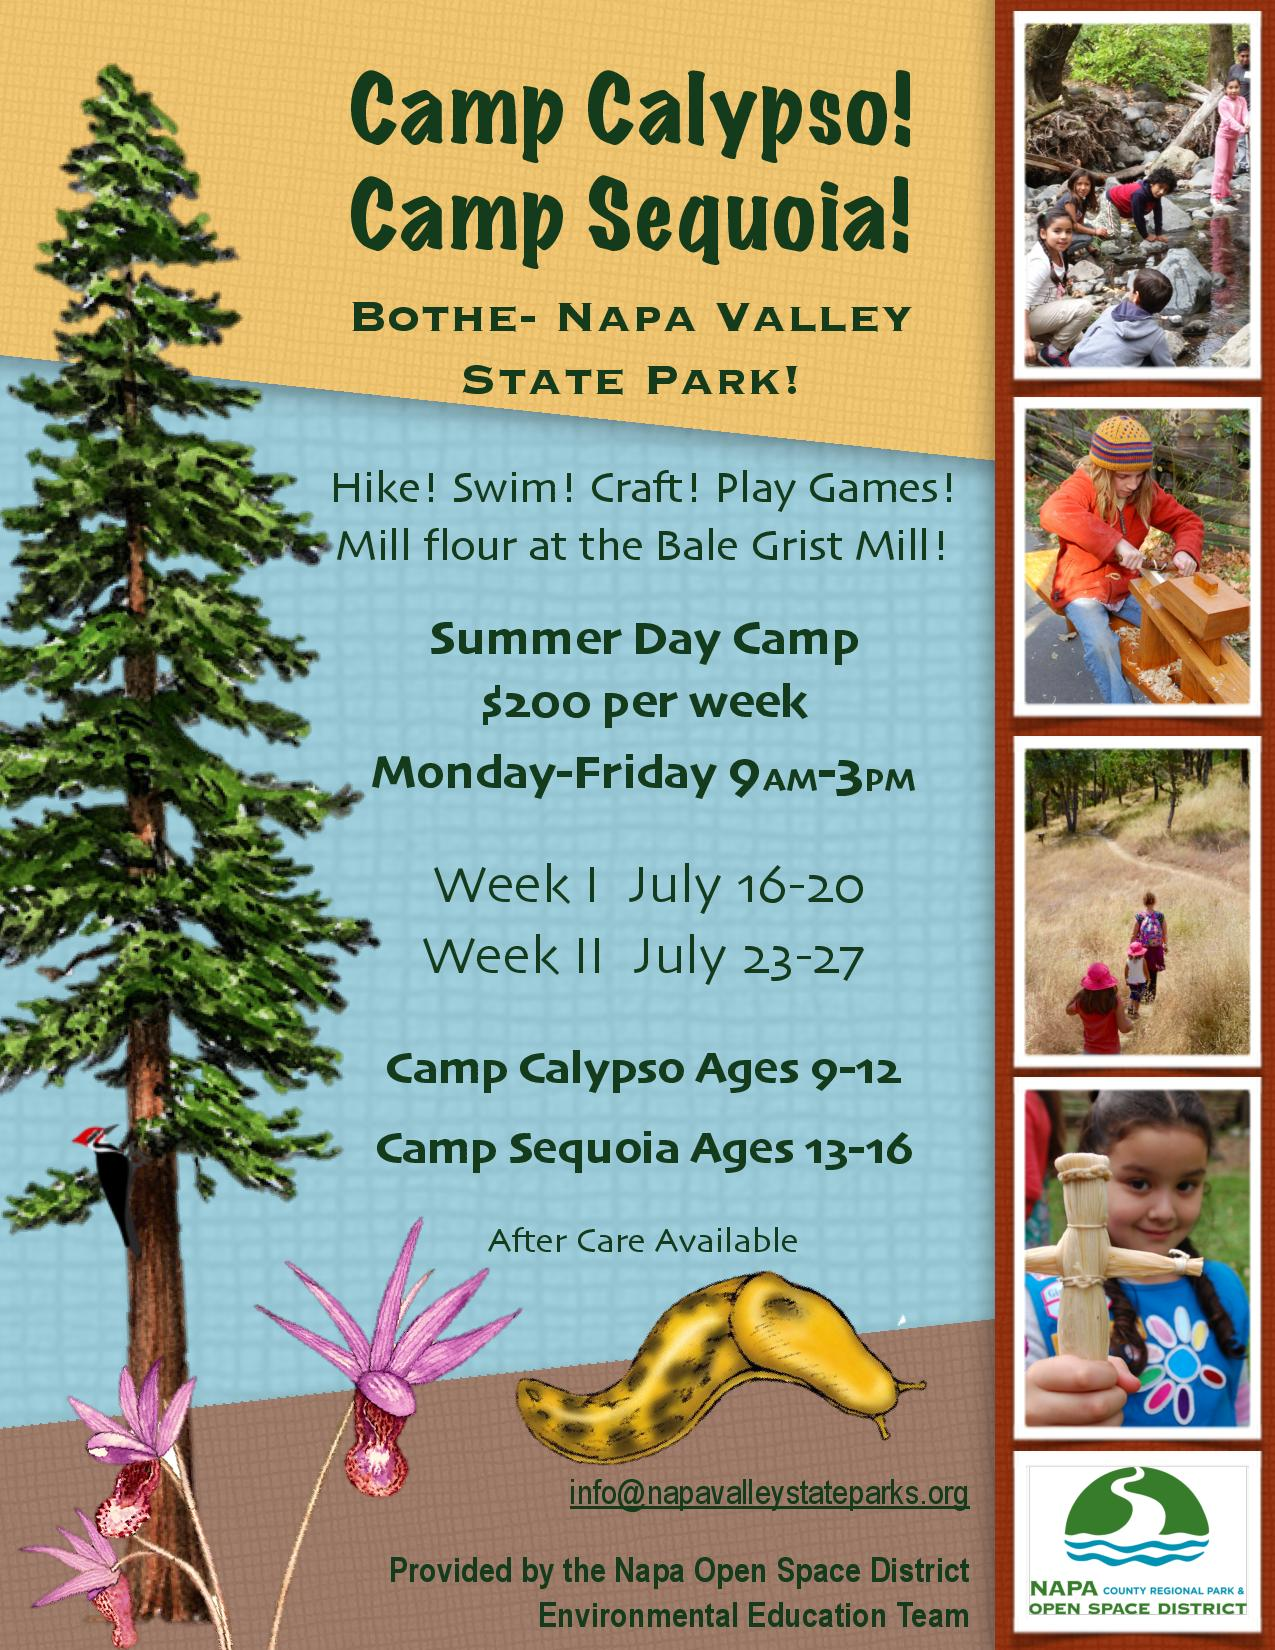 Summer Camp at Bothe Napa Valley State Park | Napa Outdoors